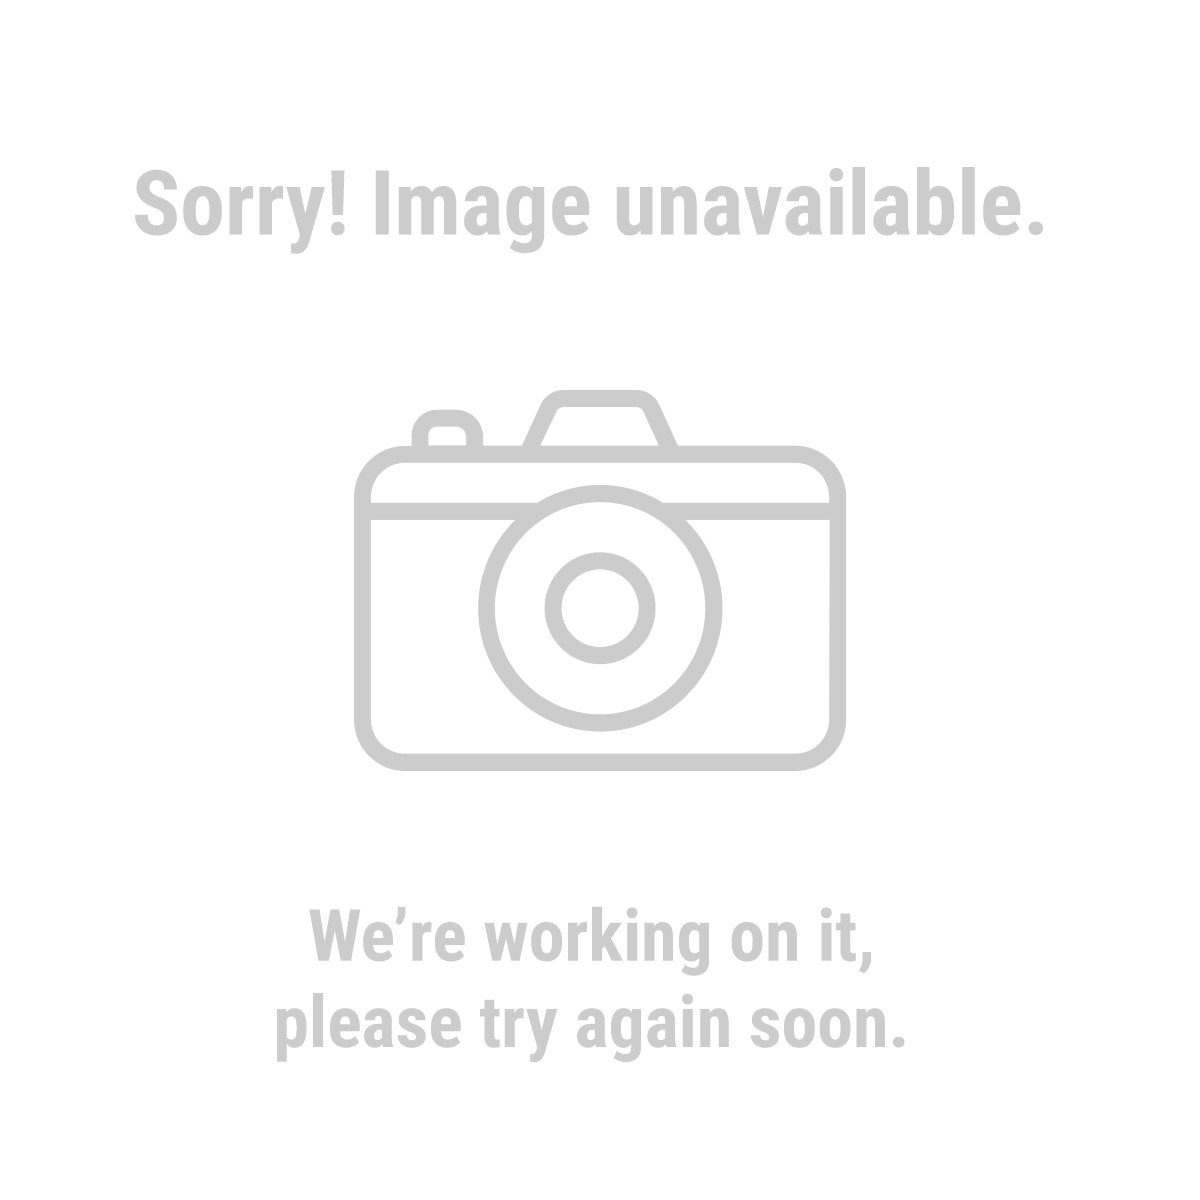 "Harbor Freight Tools 91904 Pack of 2 Terrycloth Bonnets - 5"" to 6"""